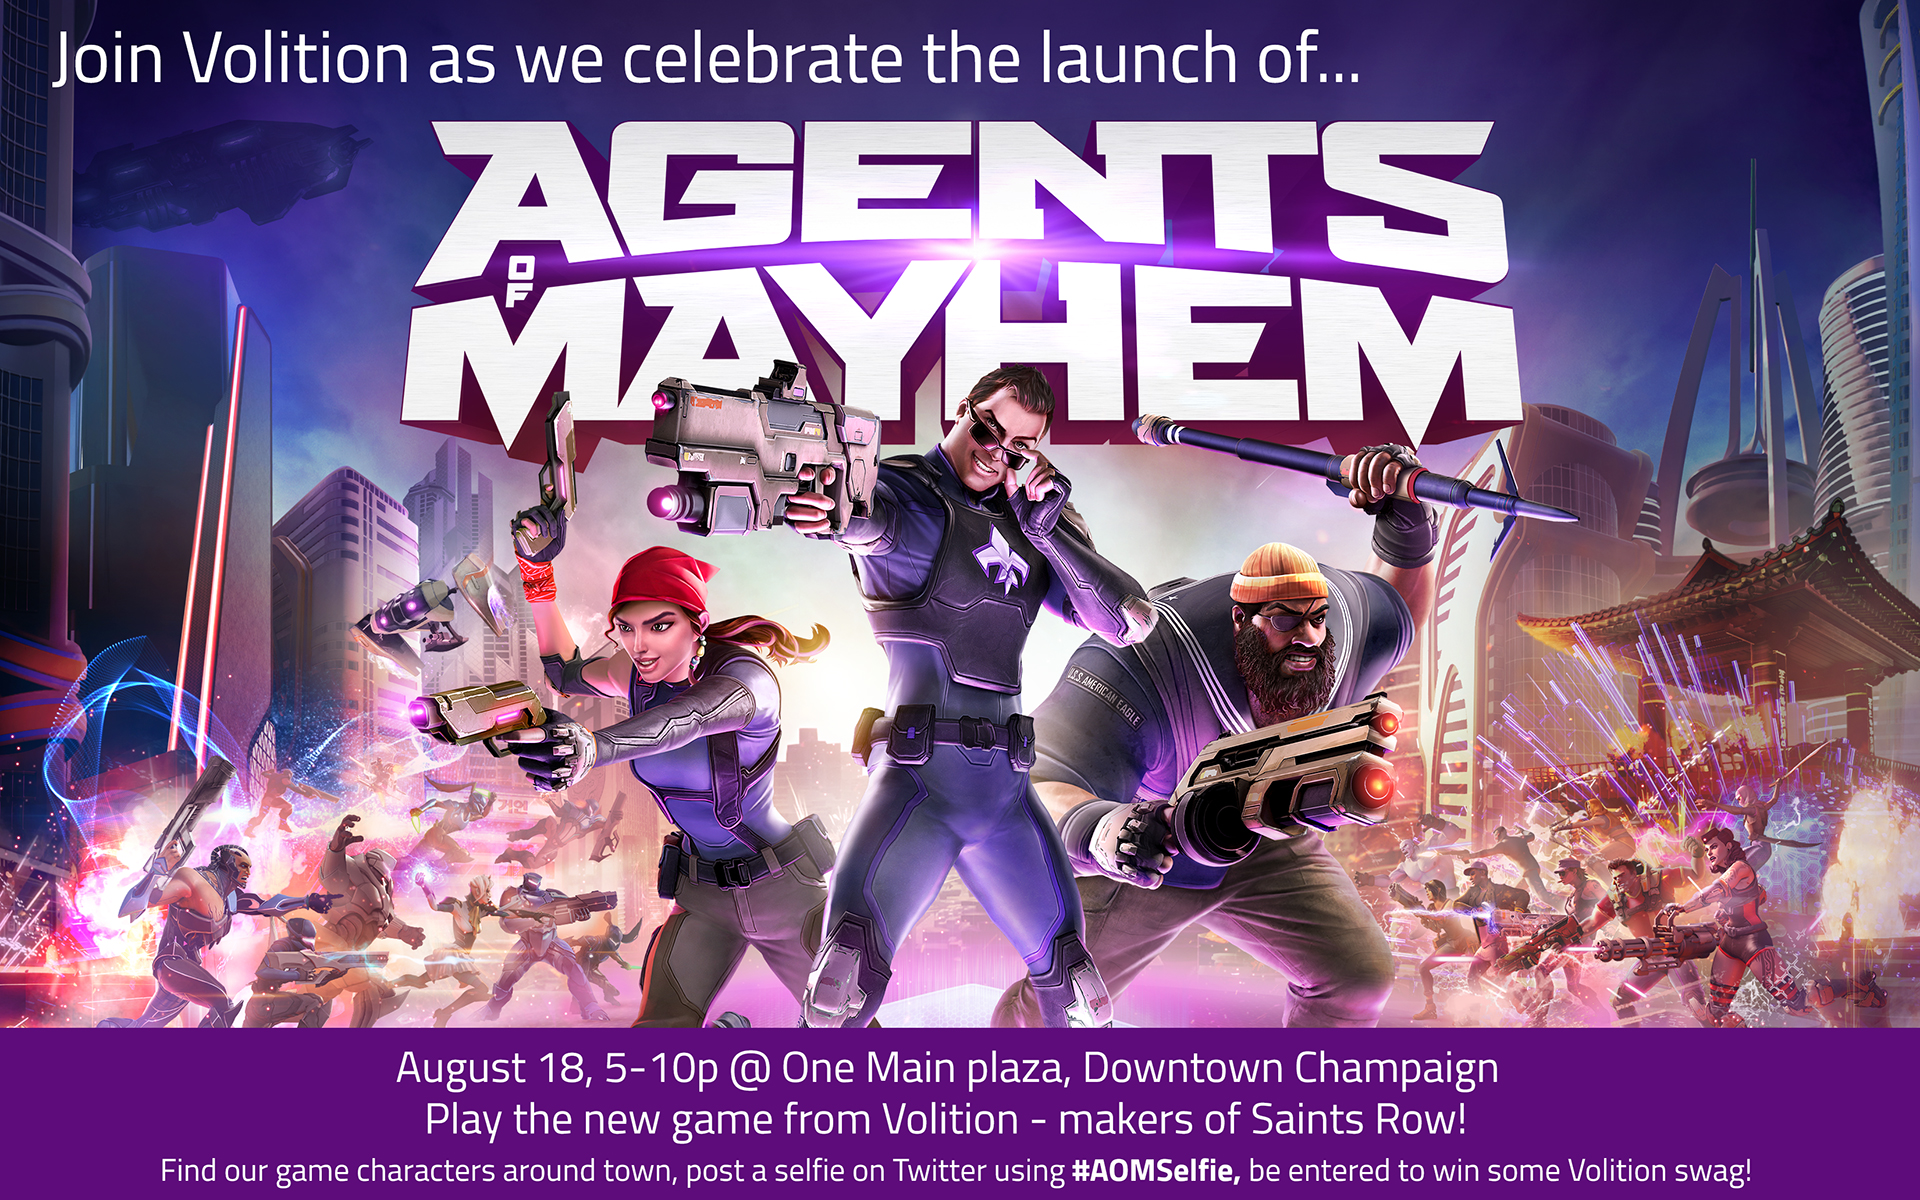 Celebrate the launch week of Agents of Mayhem Day in downtown Champaign!